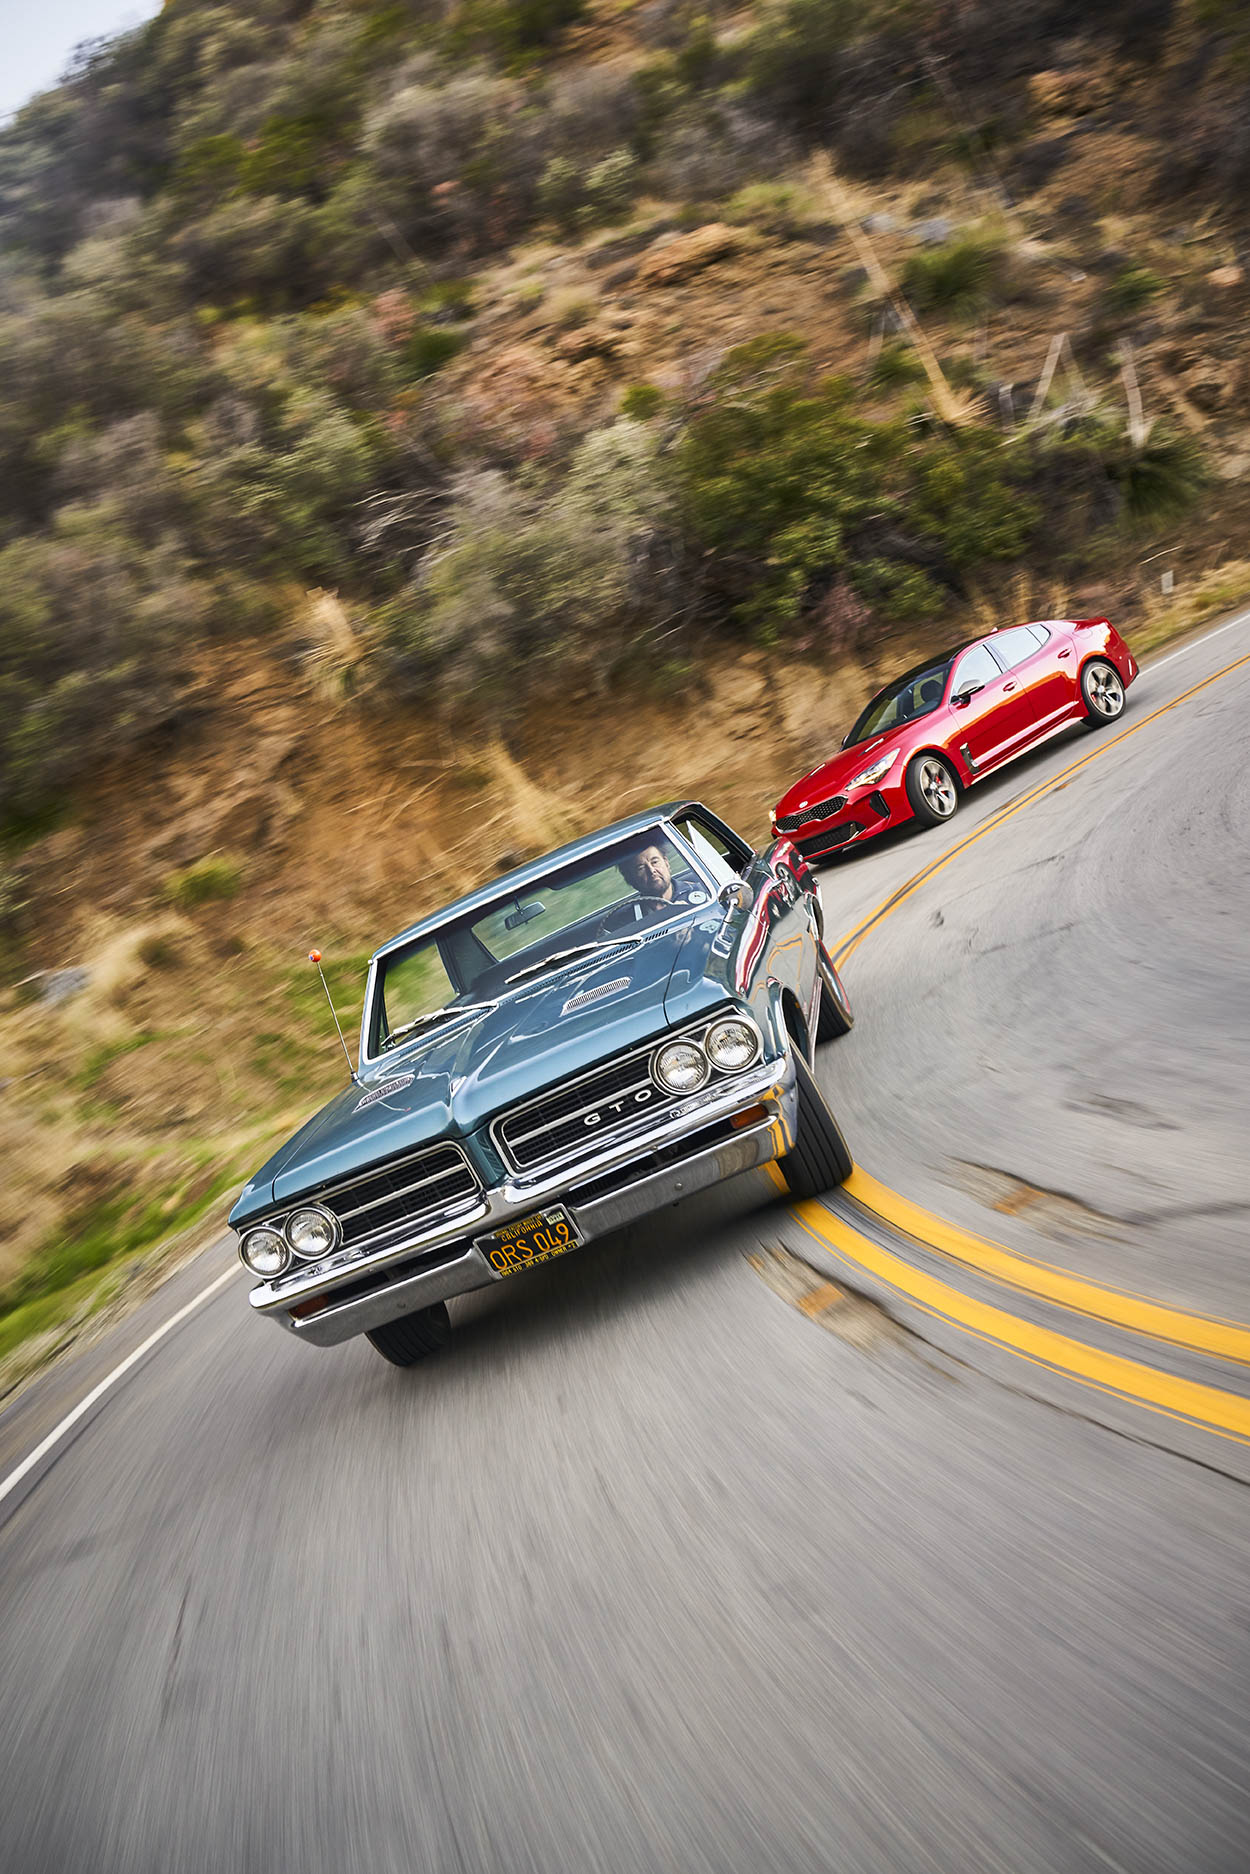 What looks like a lovingly restored '64 GTO in front of ordinary traffic is, in fact, a pairing of two cars on similar missions separated by five decades, here running Mulholland Highway near Los Angeles, scene of many a street race back in the day.